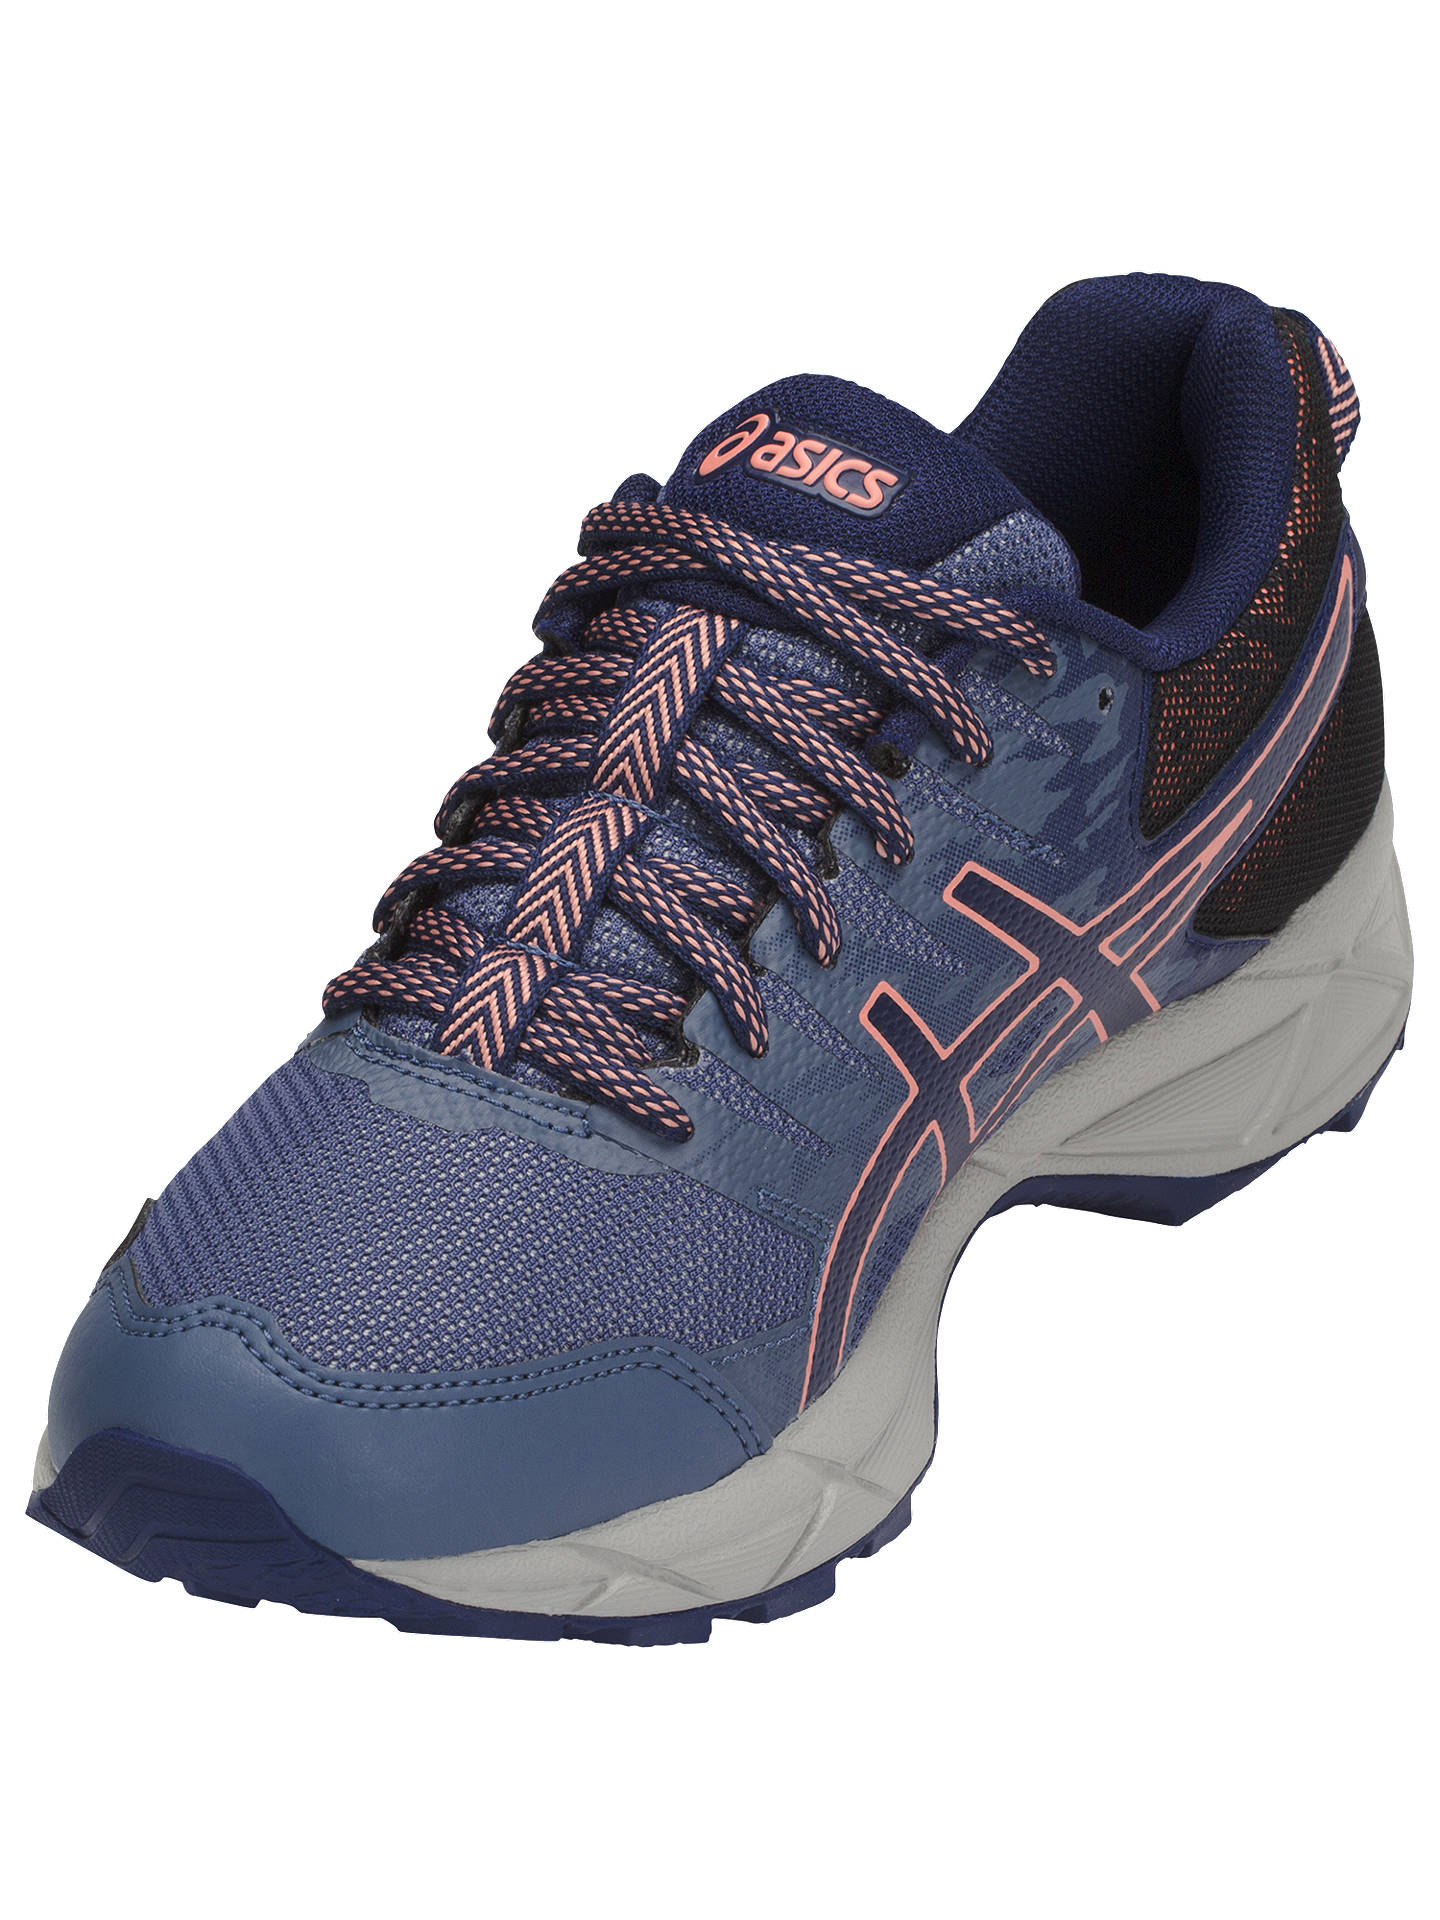 accf4a80f11 ... Buy Asics GEL-SONOMA 3 Women s Trail Running Shoes